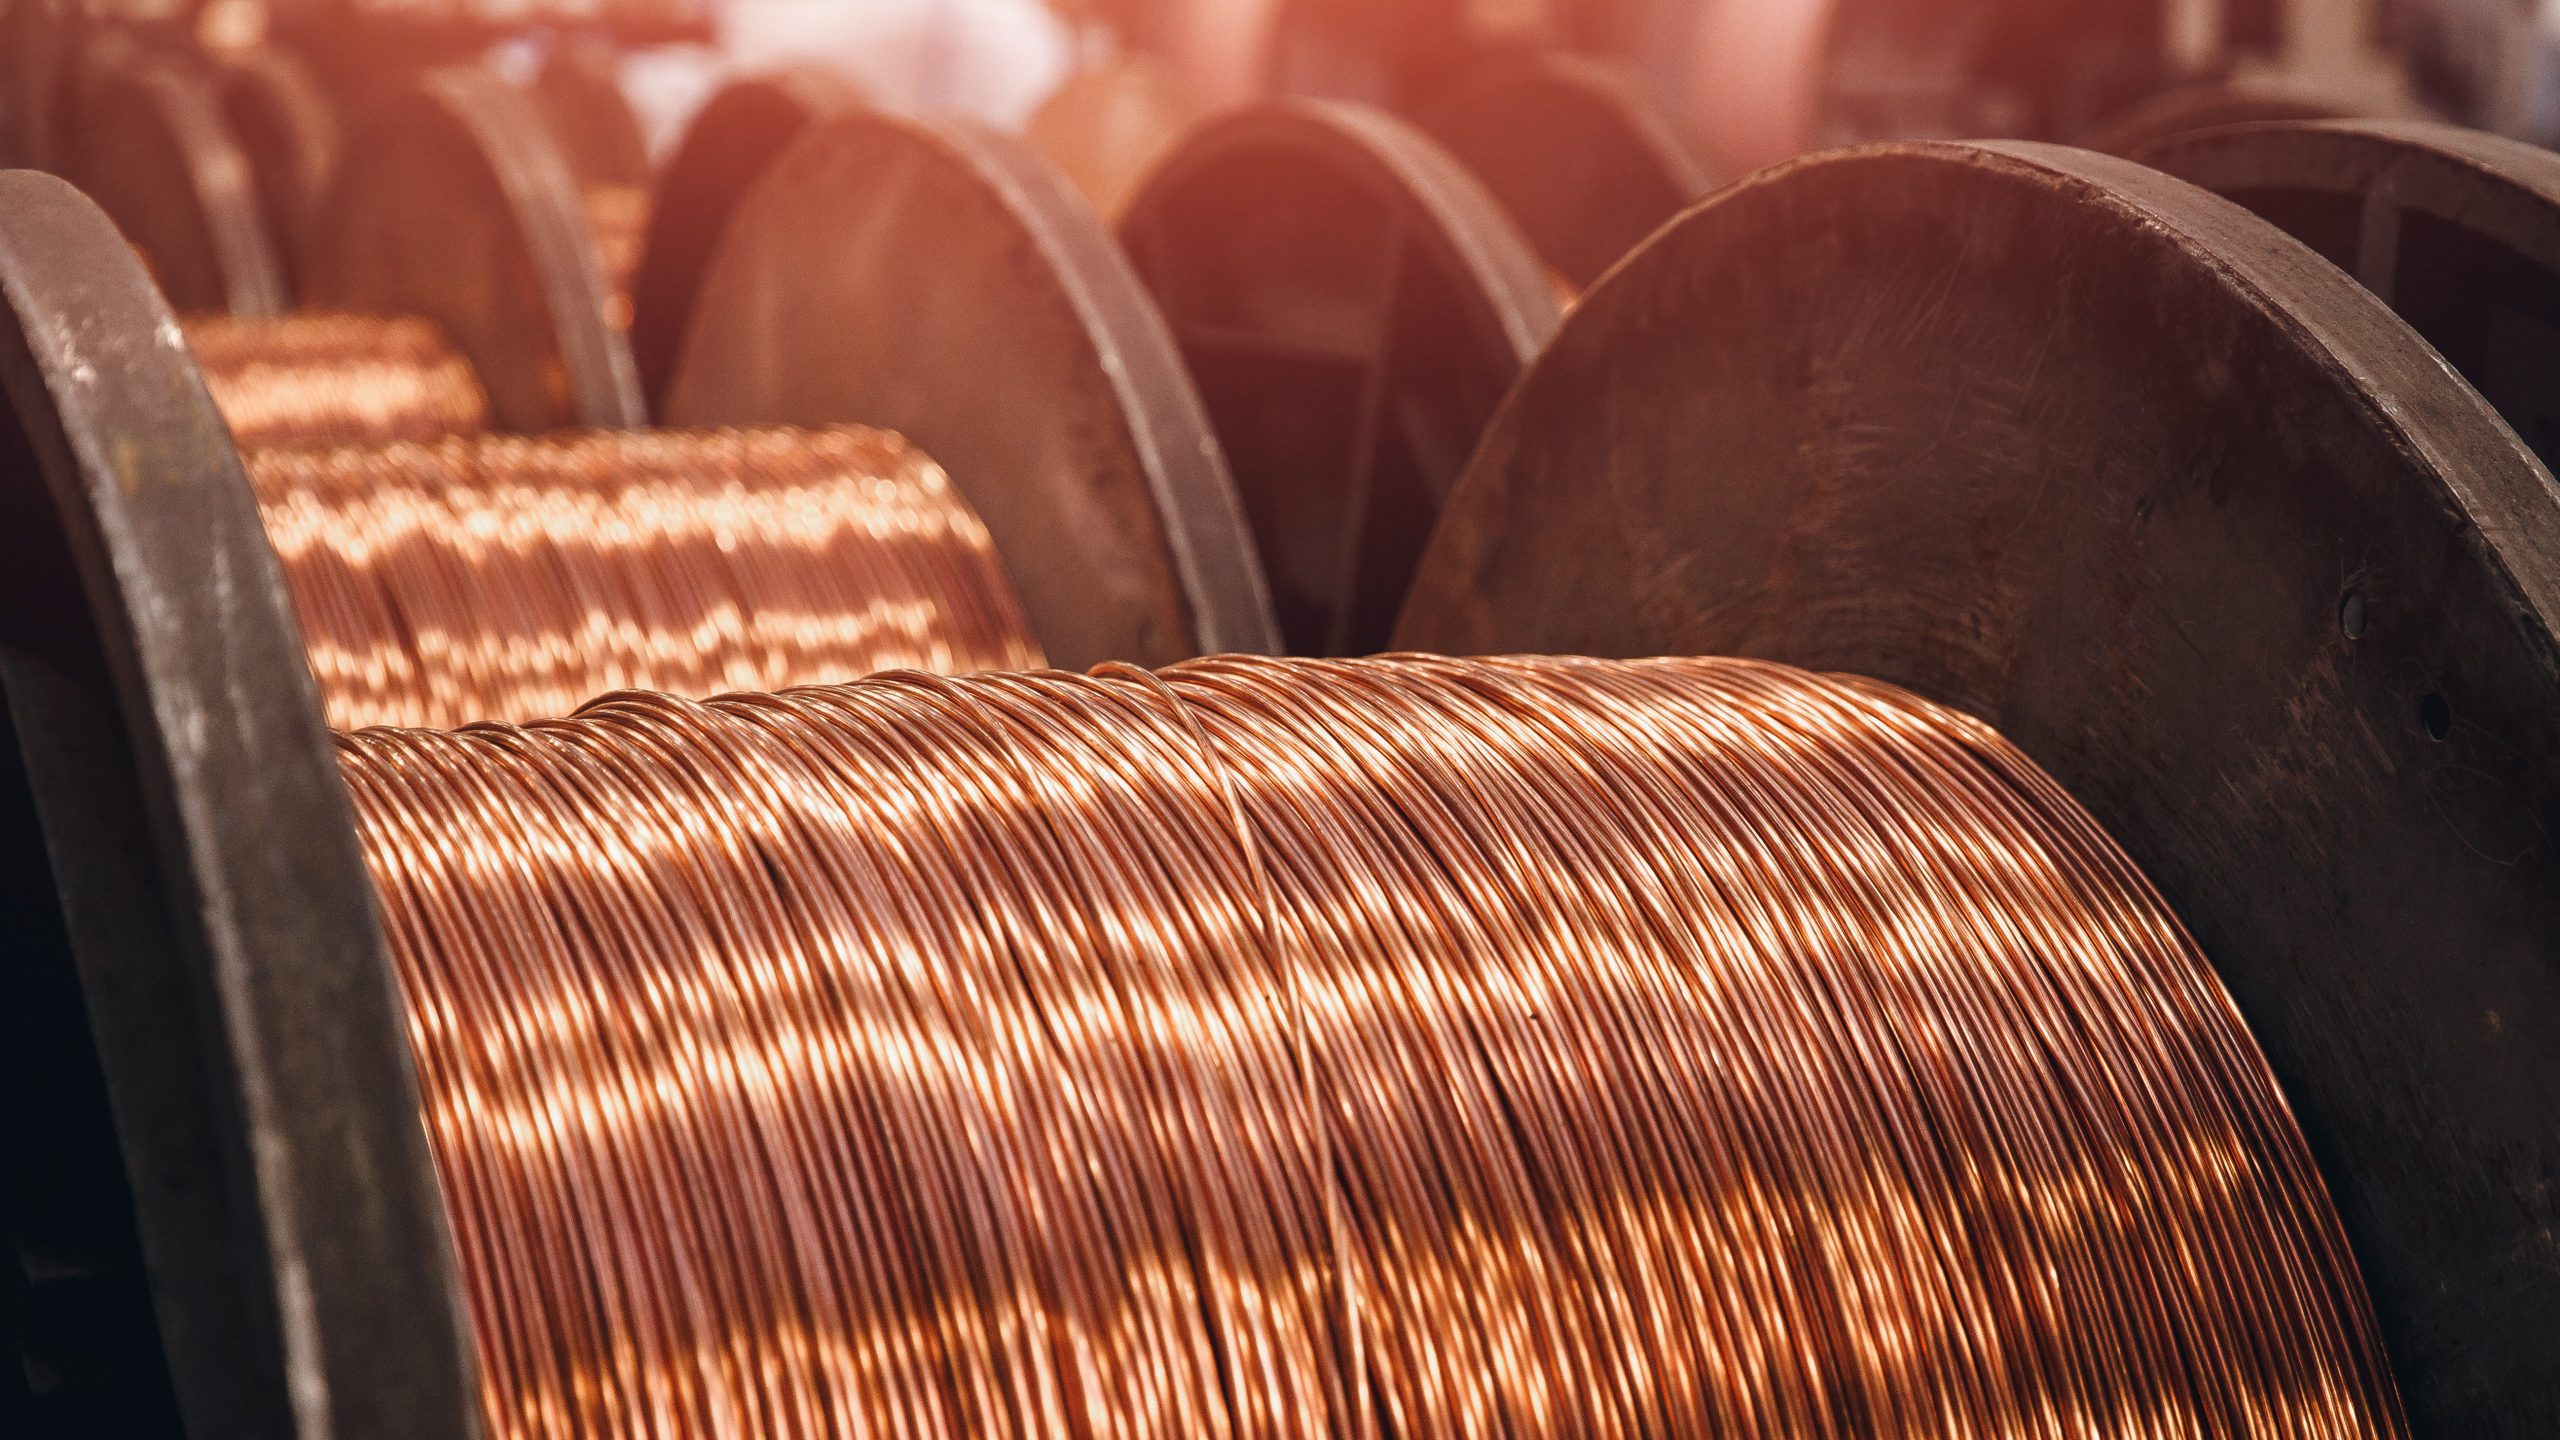 Stunning copper price rally stumbles as doubts creep in on demand